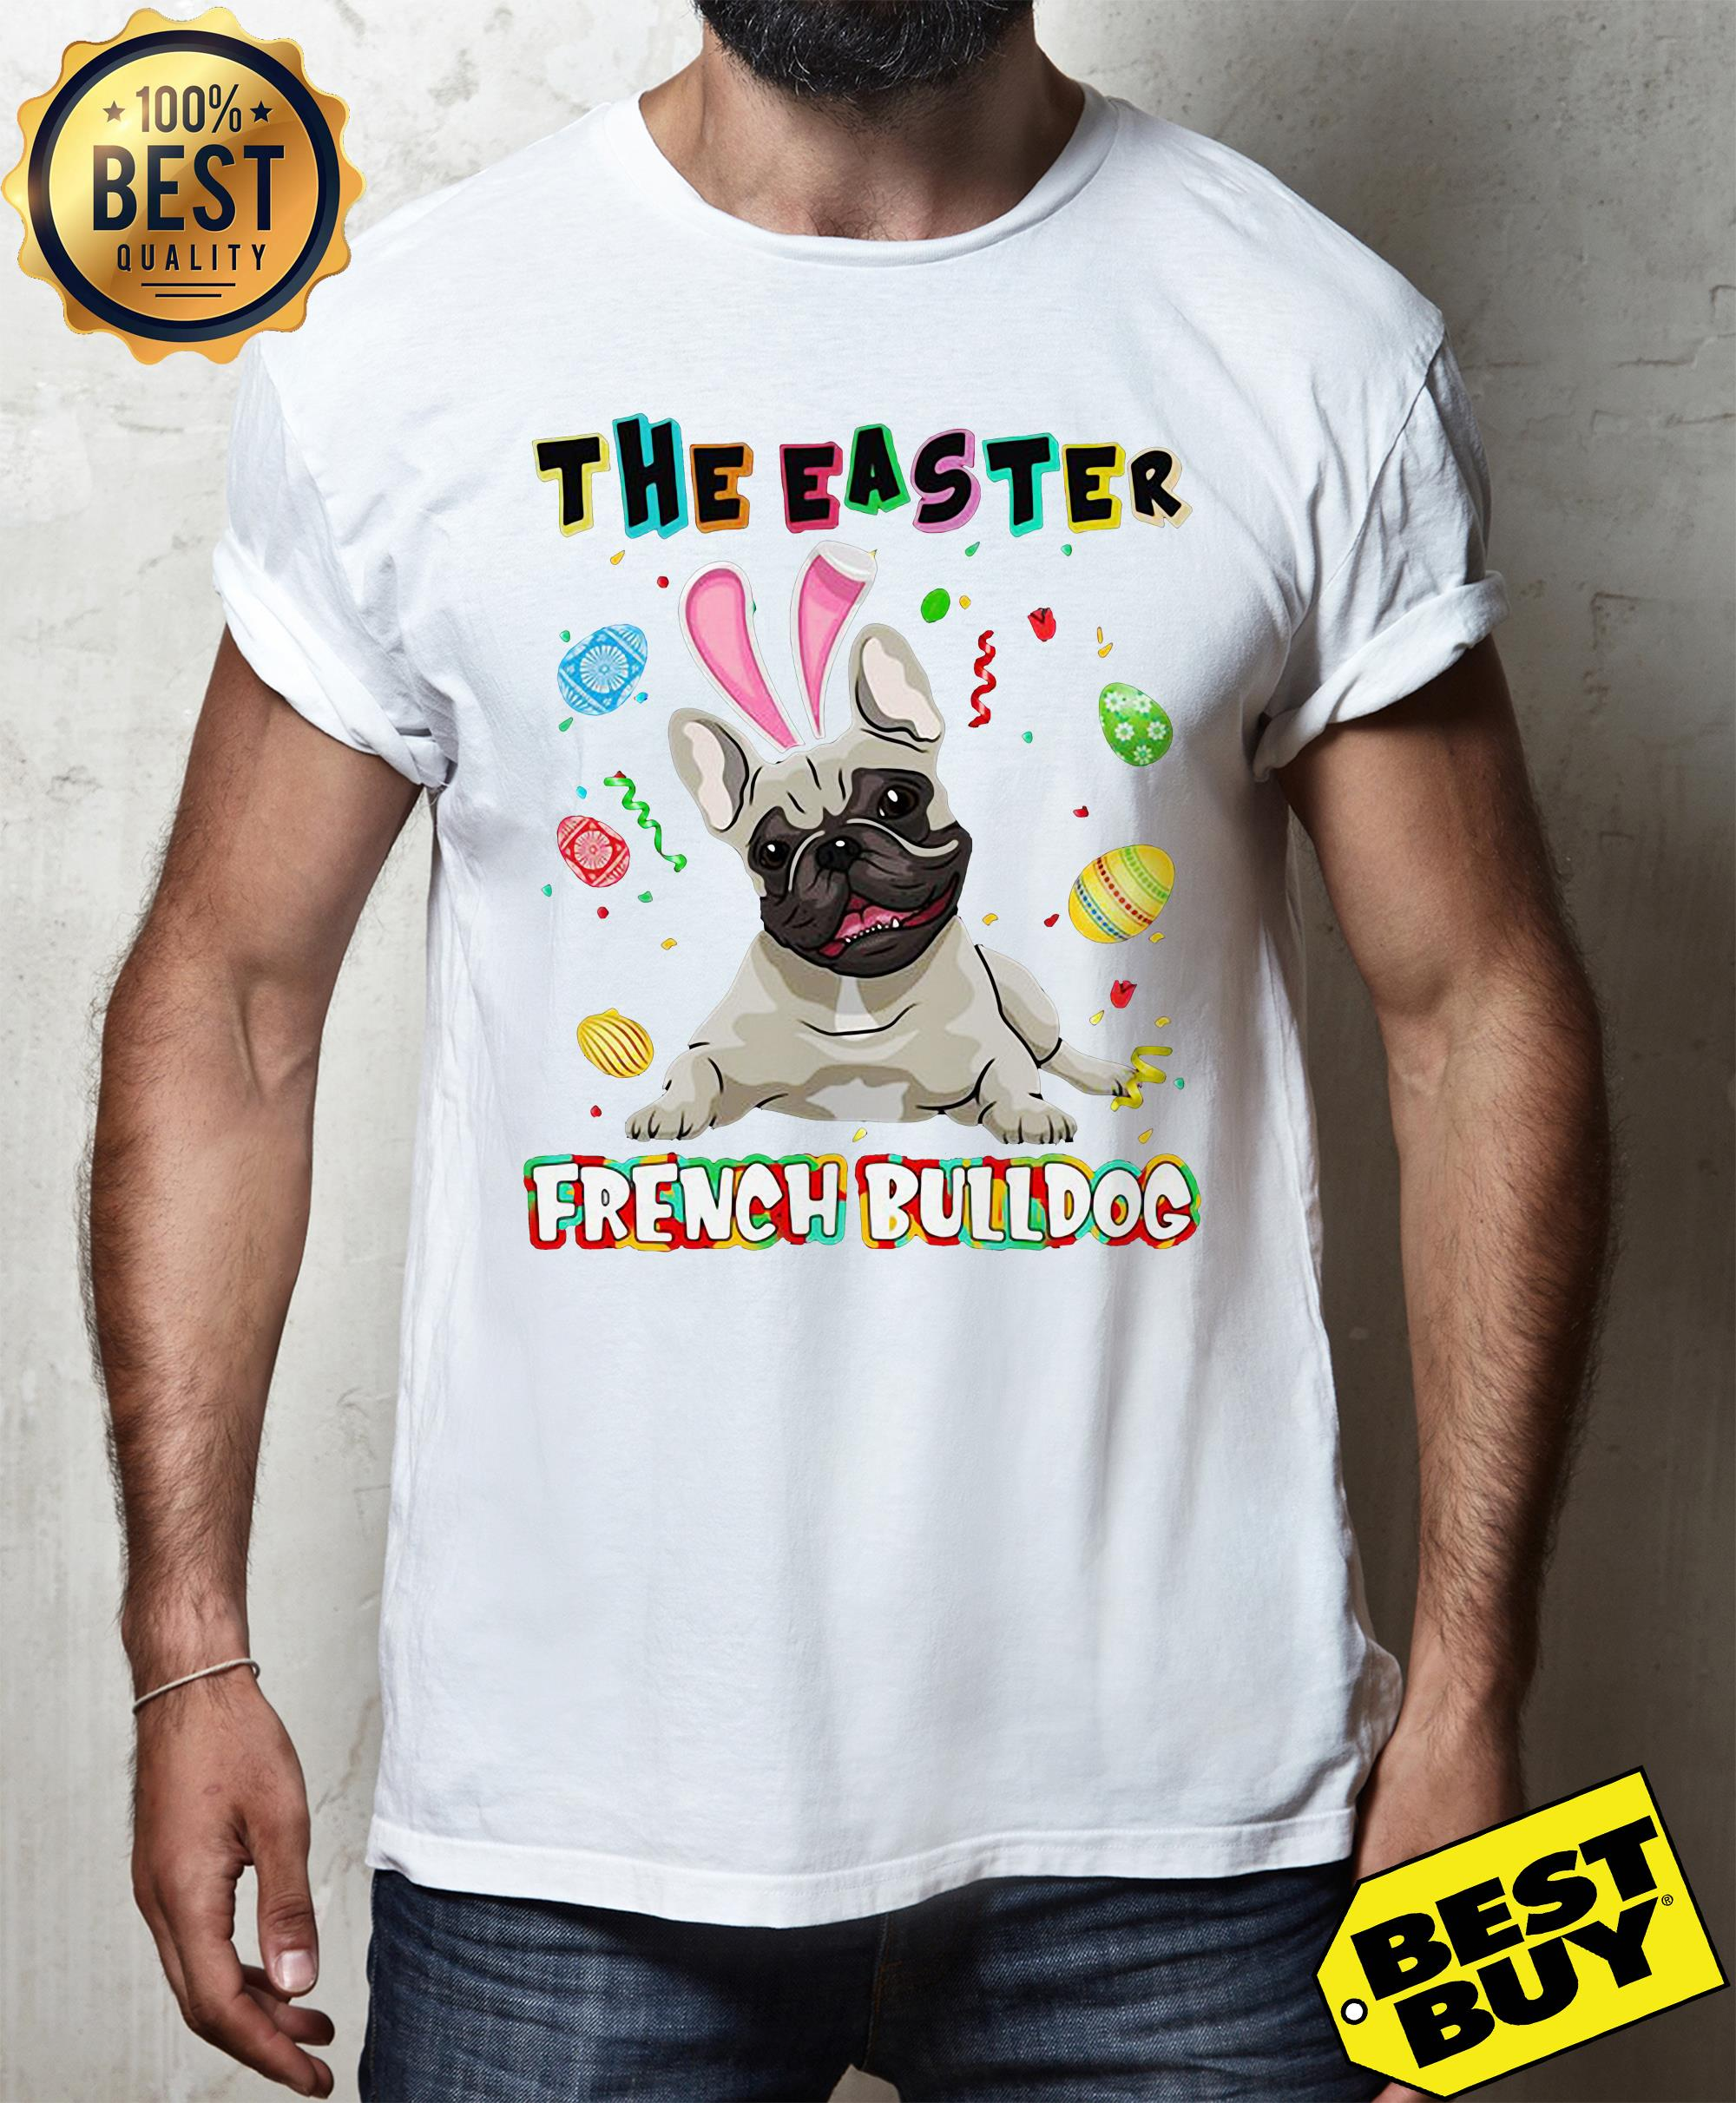 The easter french bulldog tank top